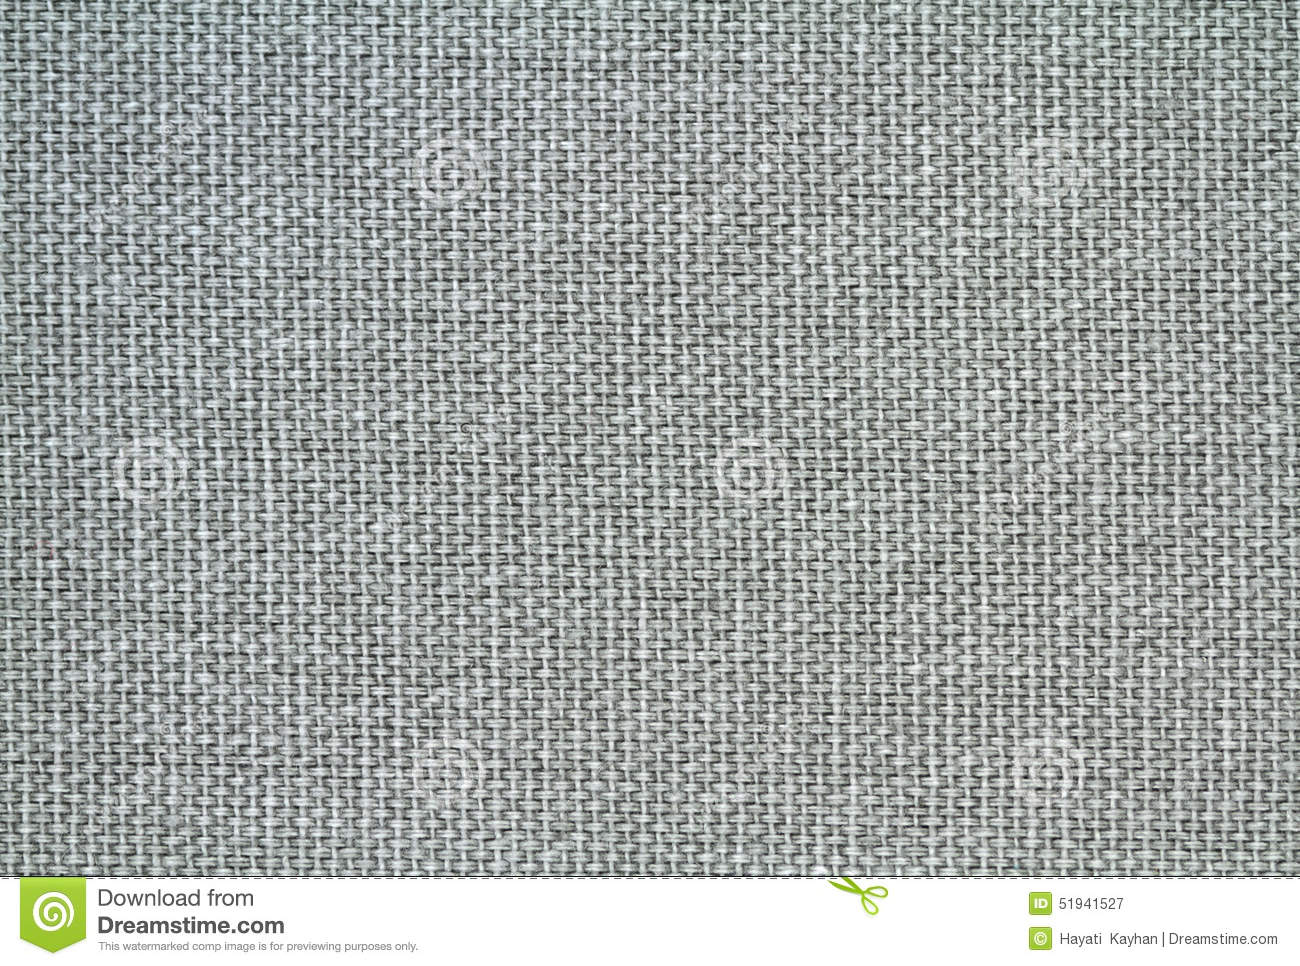 Linen Background Texture Free Stock Photos Download 9 467: Grey Linen Fabric Texture Background Stock Image